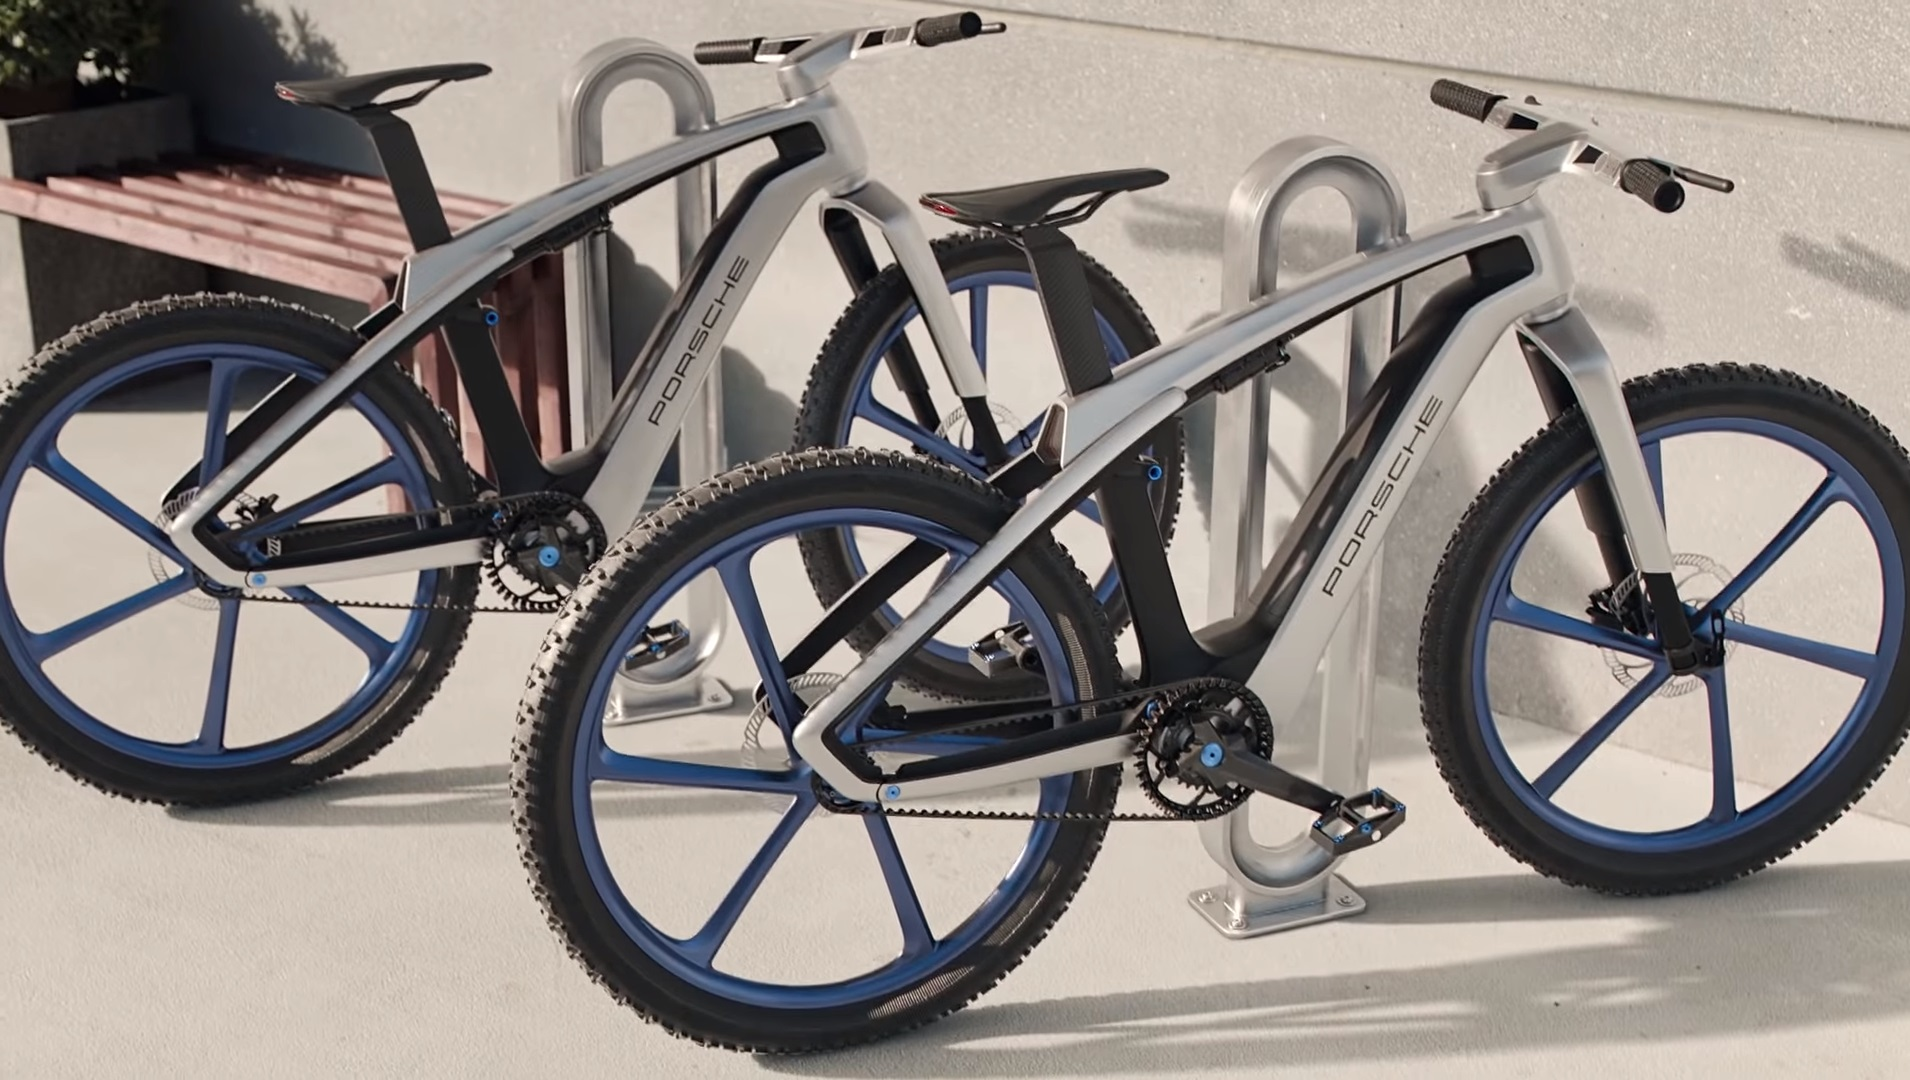 Electric bicycle from Porsche